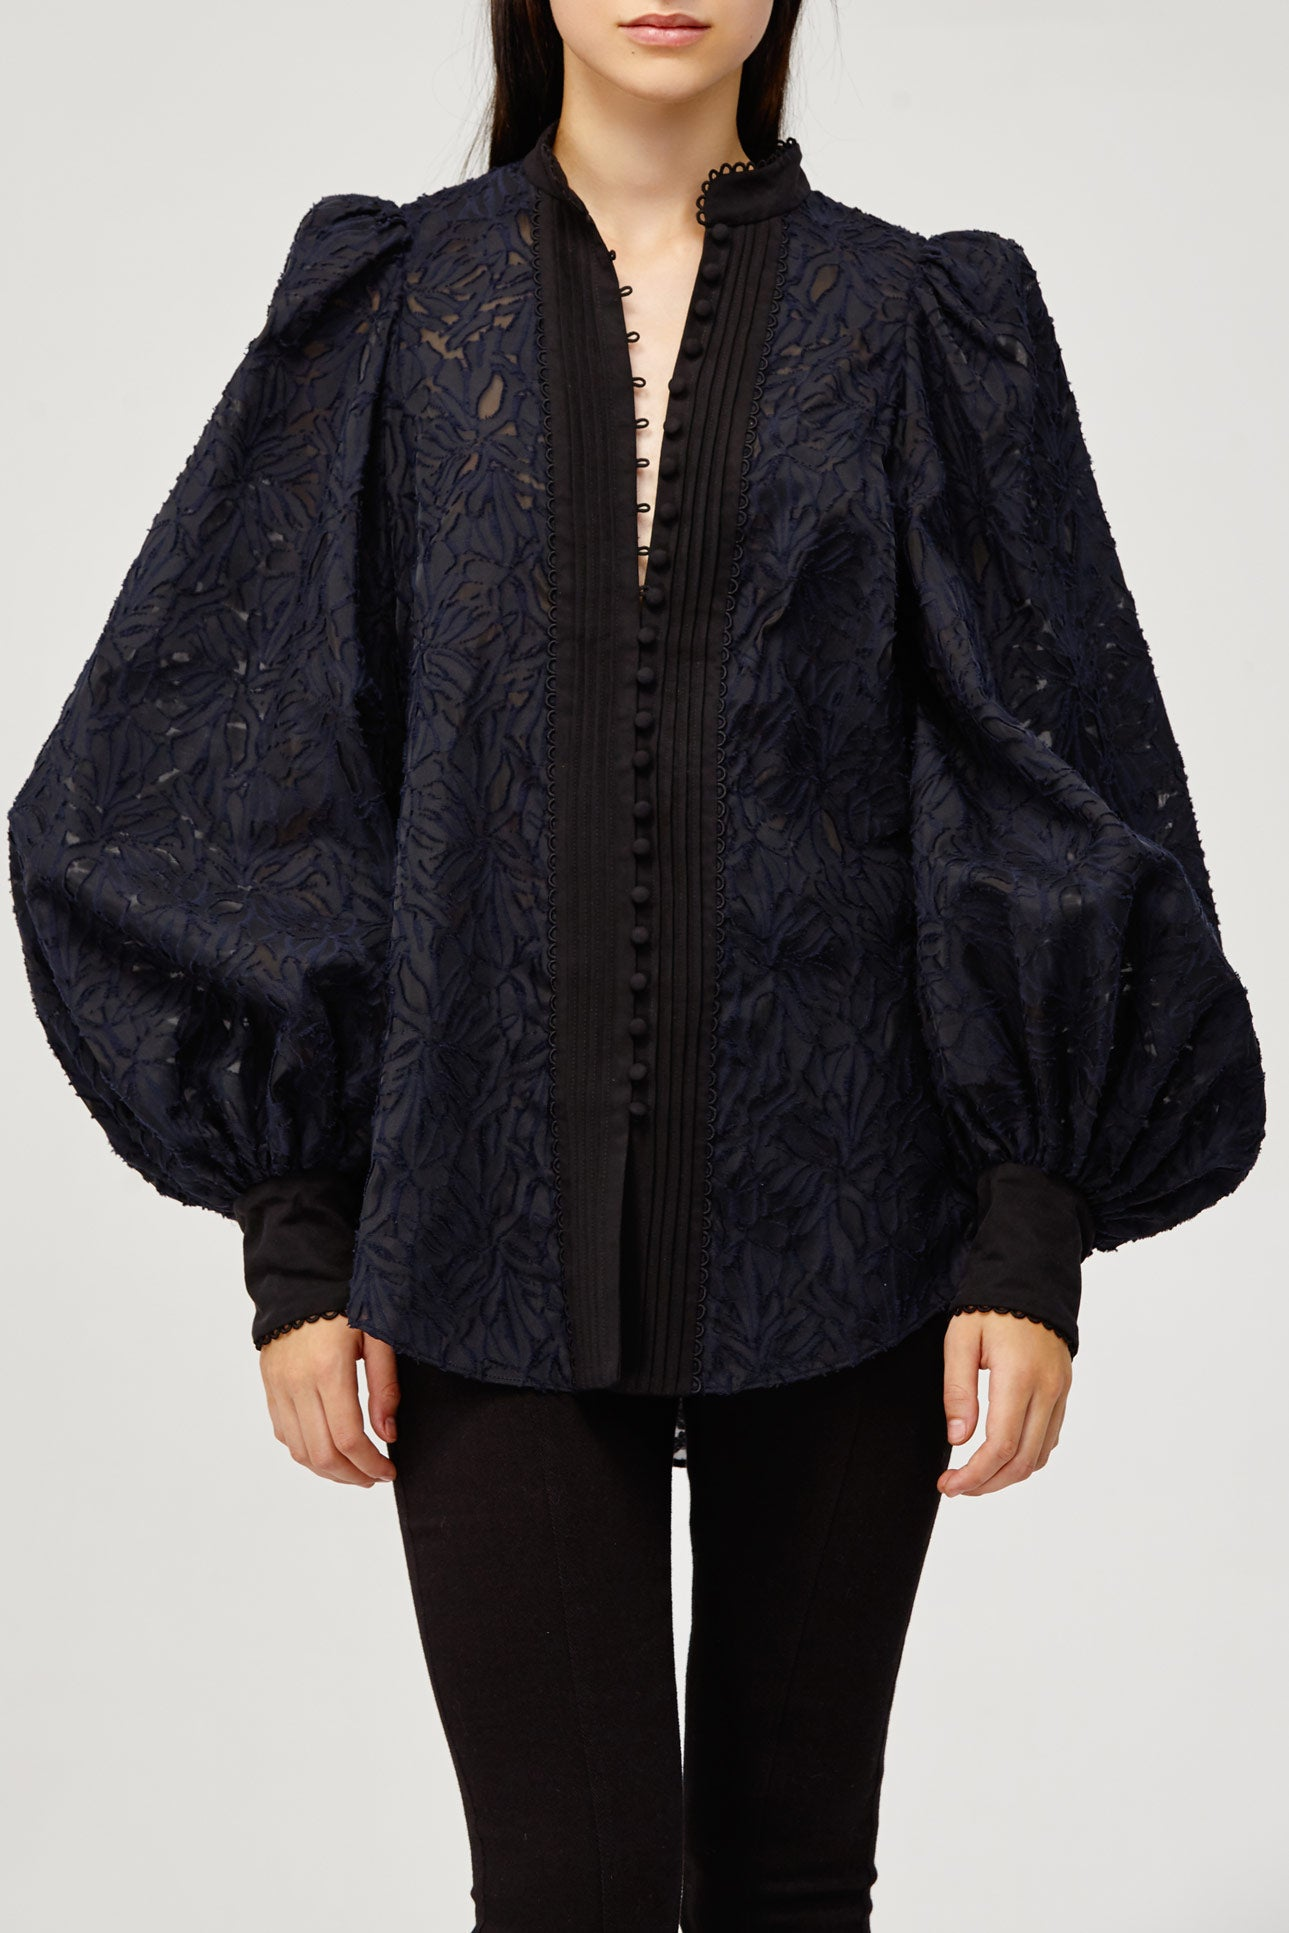 Acler Ladies Navy Lace Long Sleeved Blouse Top with Scalloped Edges and Ruffles